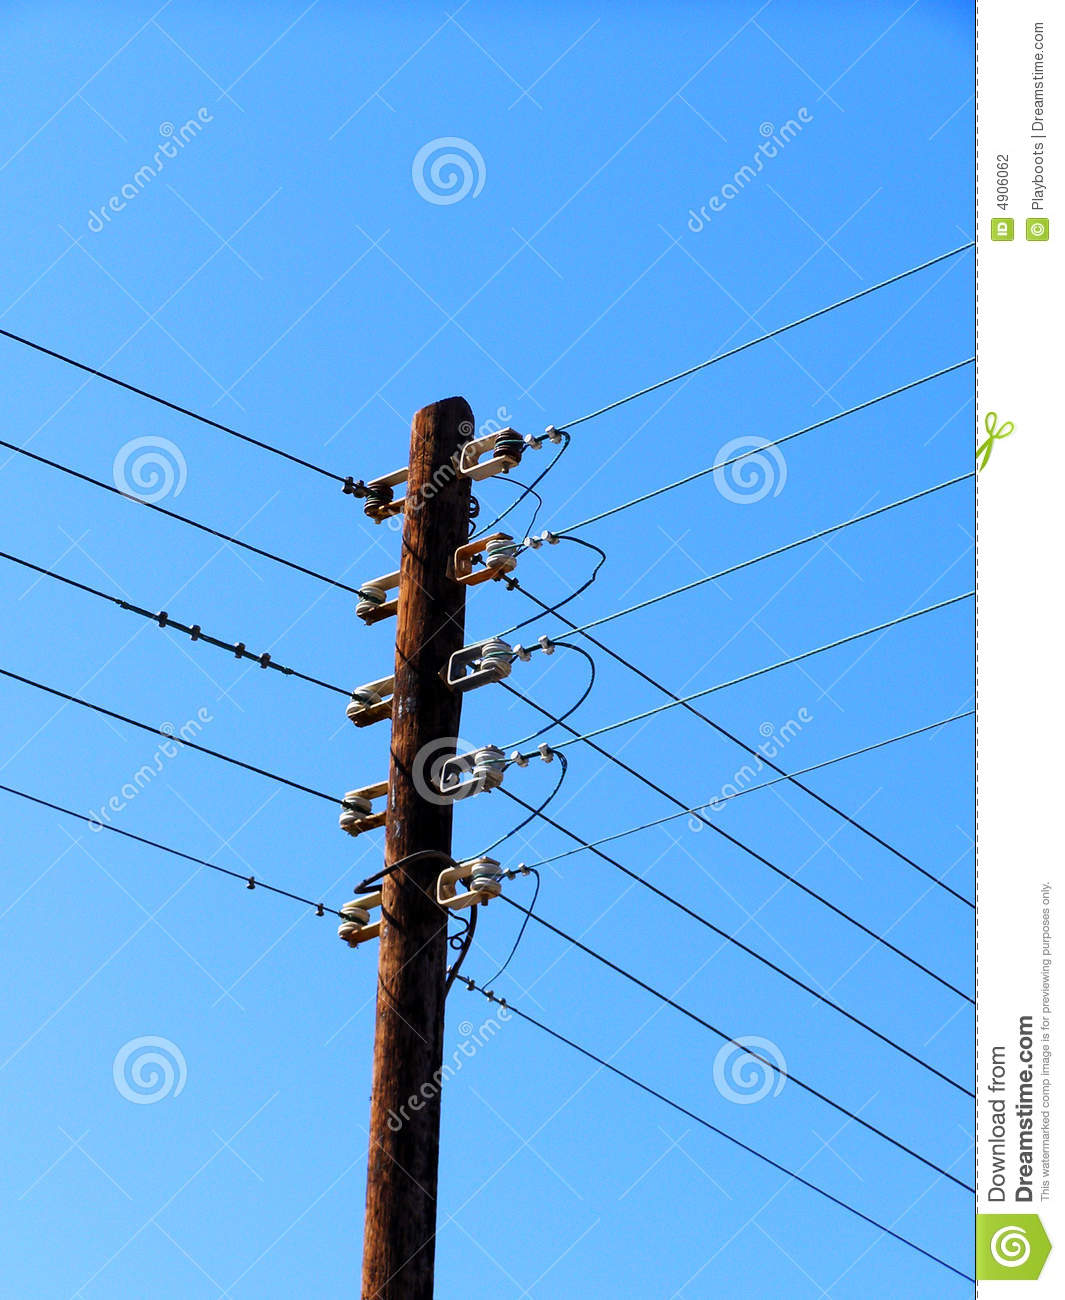 Electrical pole stock photo. Image of cables, tower, pile - 4906062